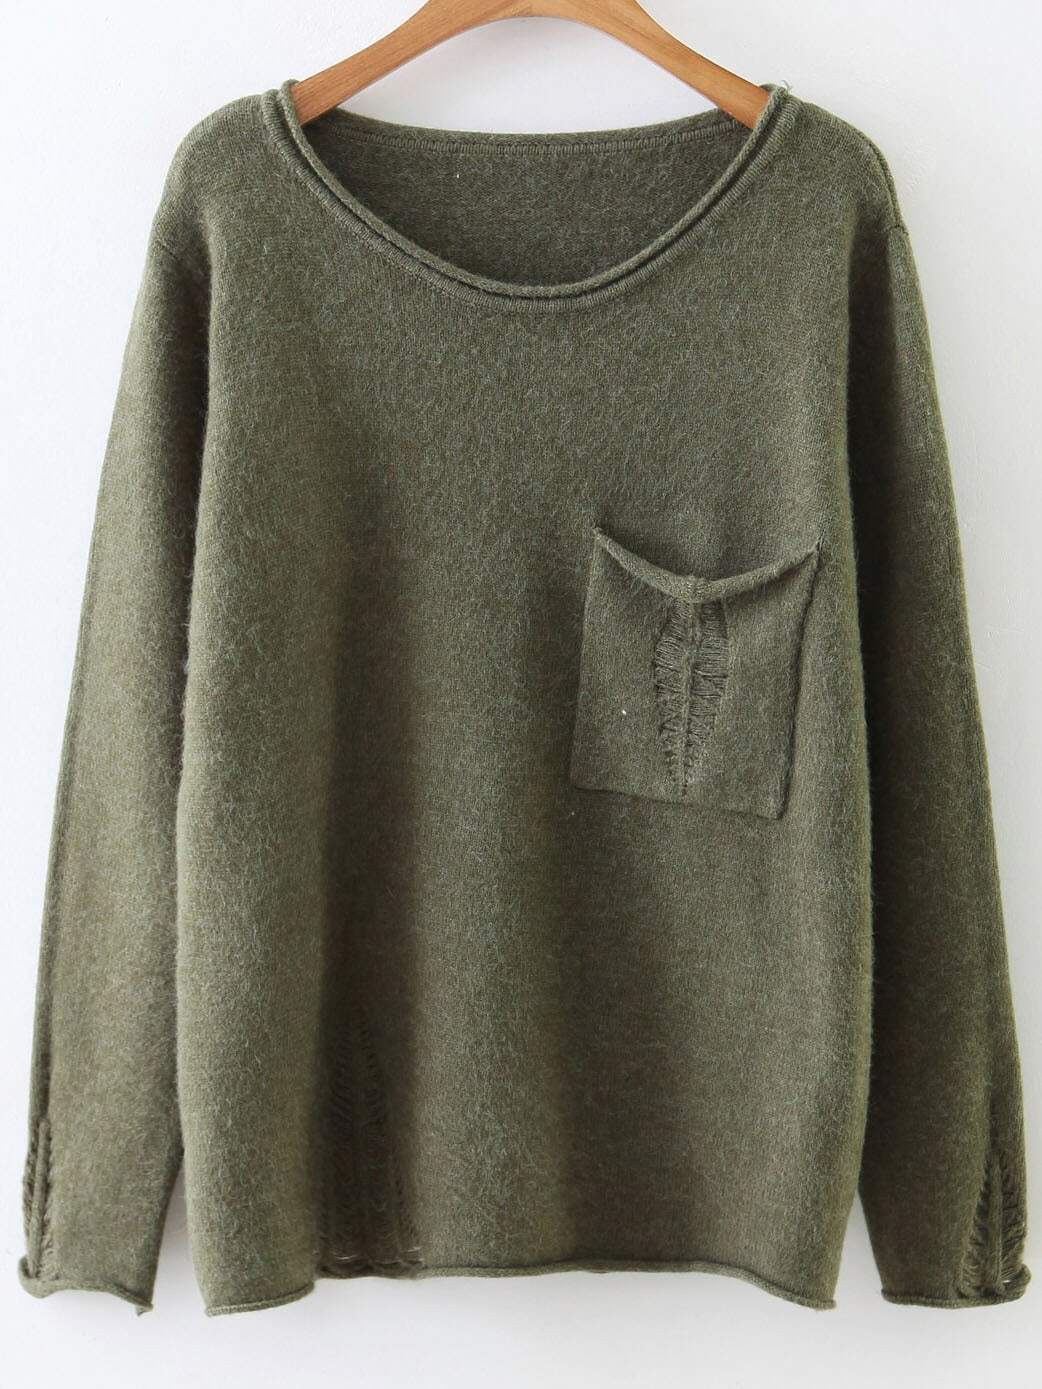 Army Green Rolled Trim Ripped Knitwear With PocketArmy Green Rolled Trim Ripped Knitwear With Pocket<br><br>color: Green<br>size: one-size